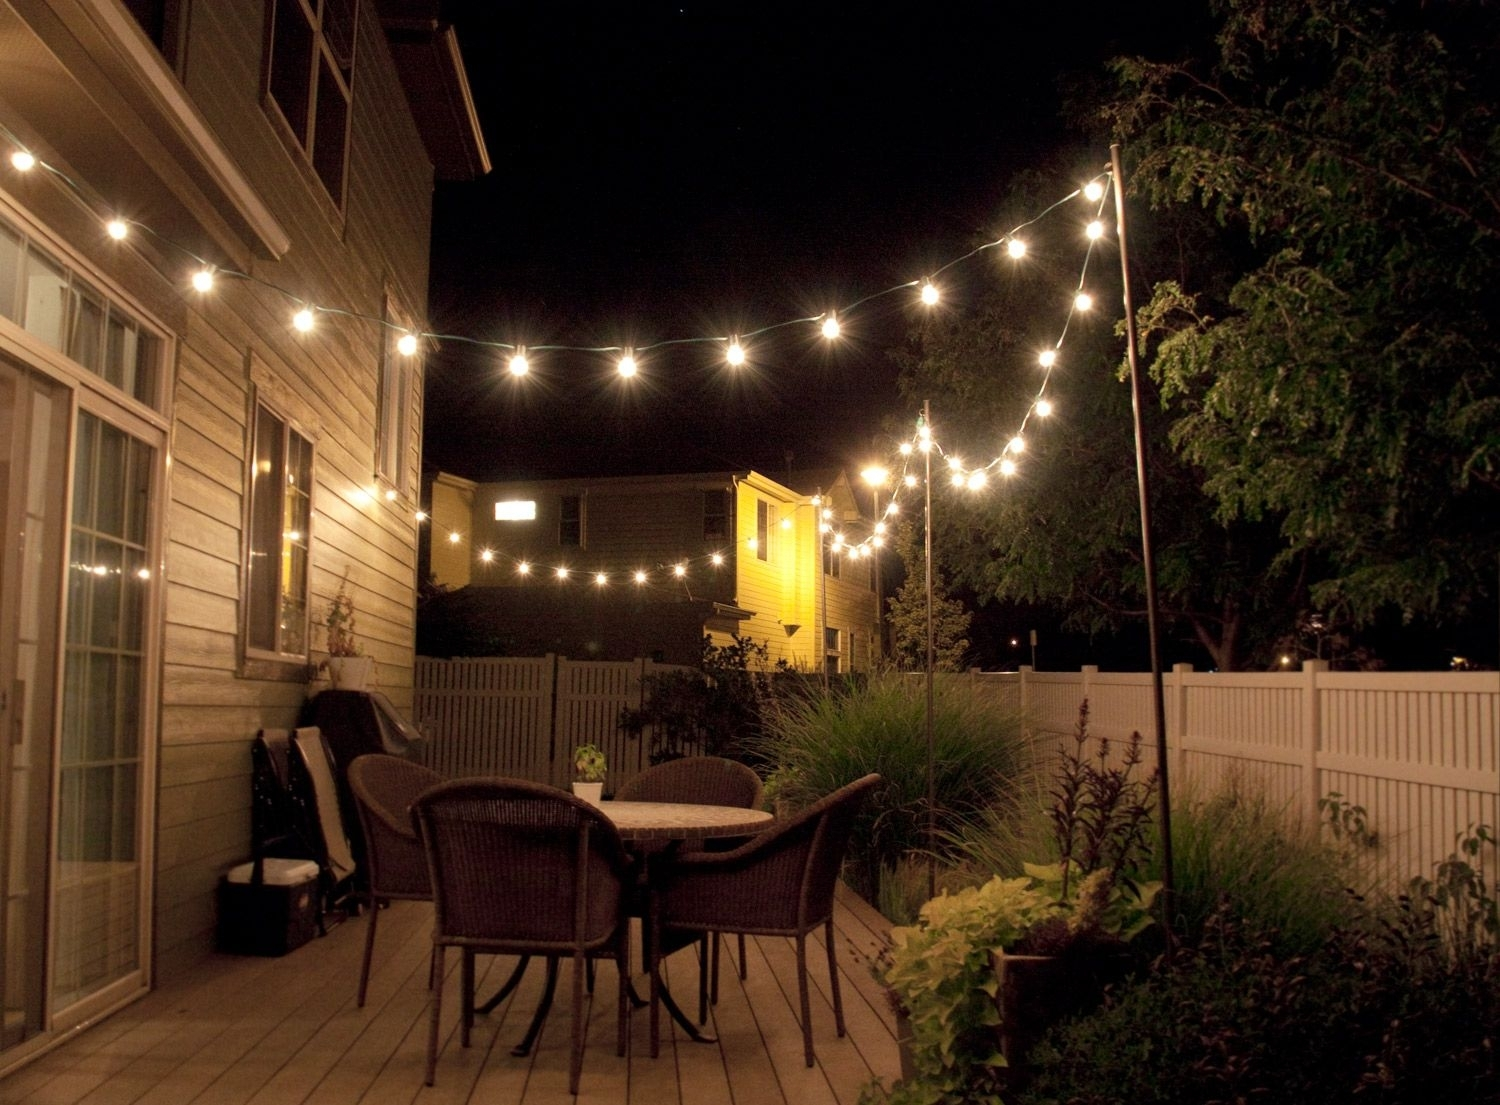 How To Make Inexpensive Poles To Hang String Lights On – Café Style Inside Pole Hanging Outdoor Lights (View 4 of 15)